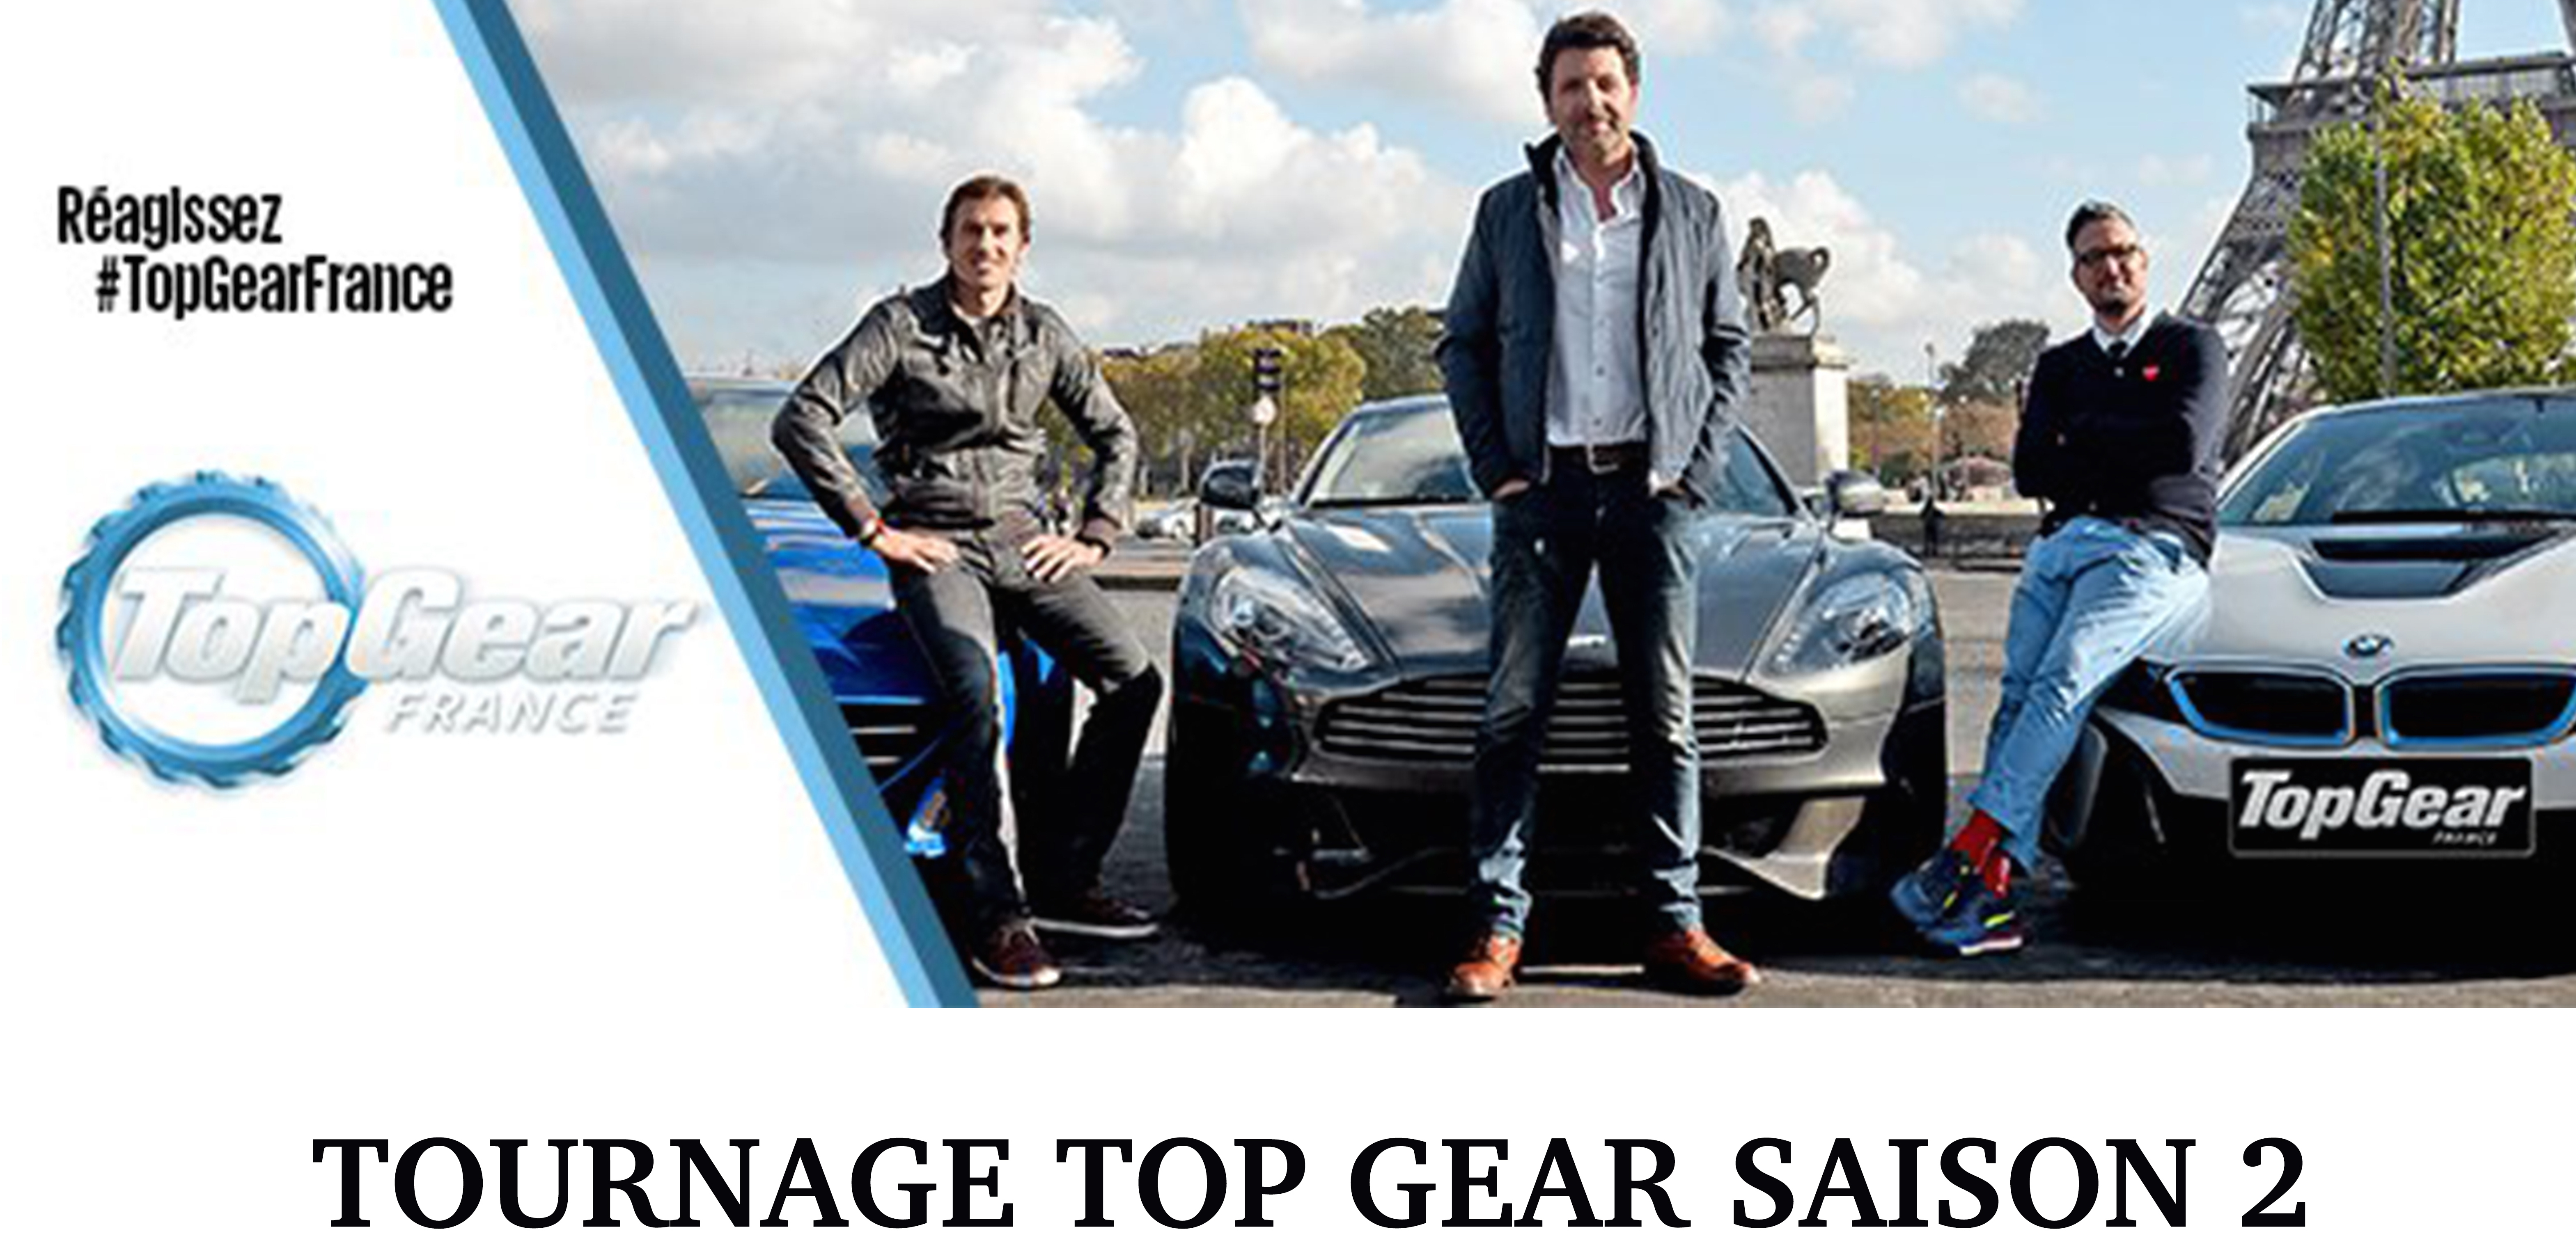 Affiche_TOP_GEAR_Courte